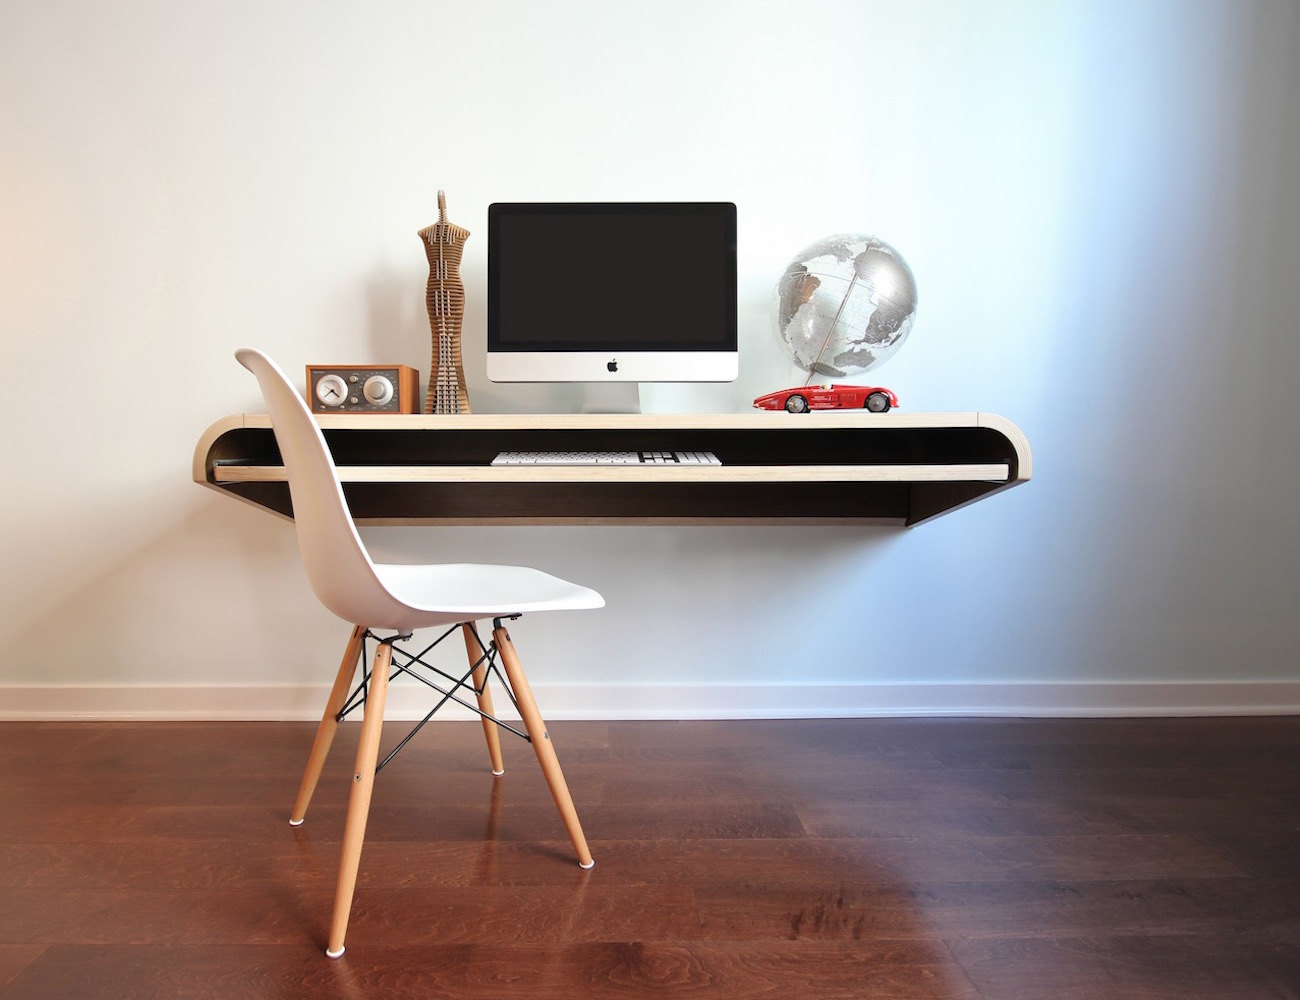 Minimal Float Wall Desk by Orange22 – Multi Use Workstation or Display Shelf